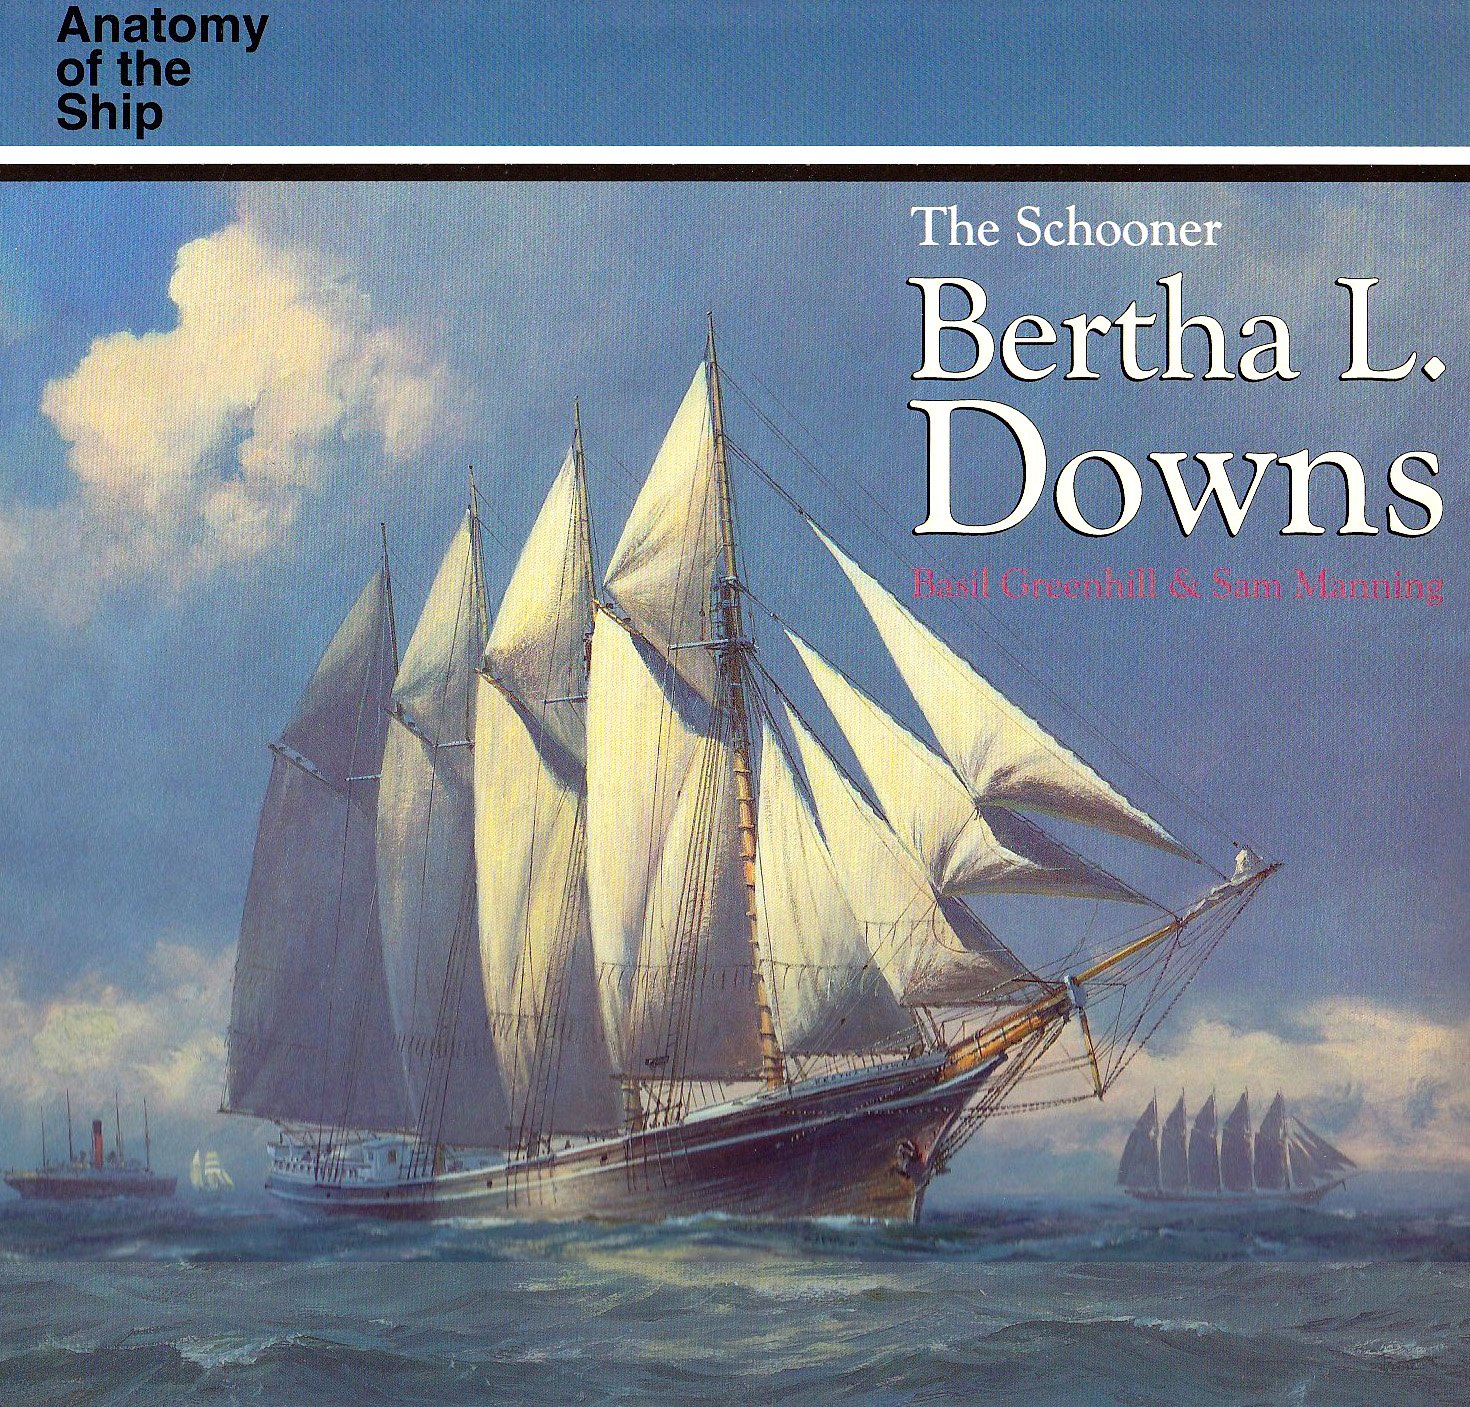 The Schooner Bertha L. Downs (Anatomy of the Ship): Amazon.co.uk ...